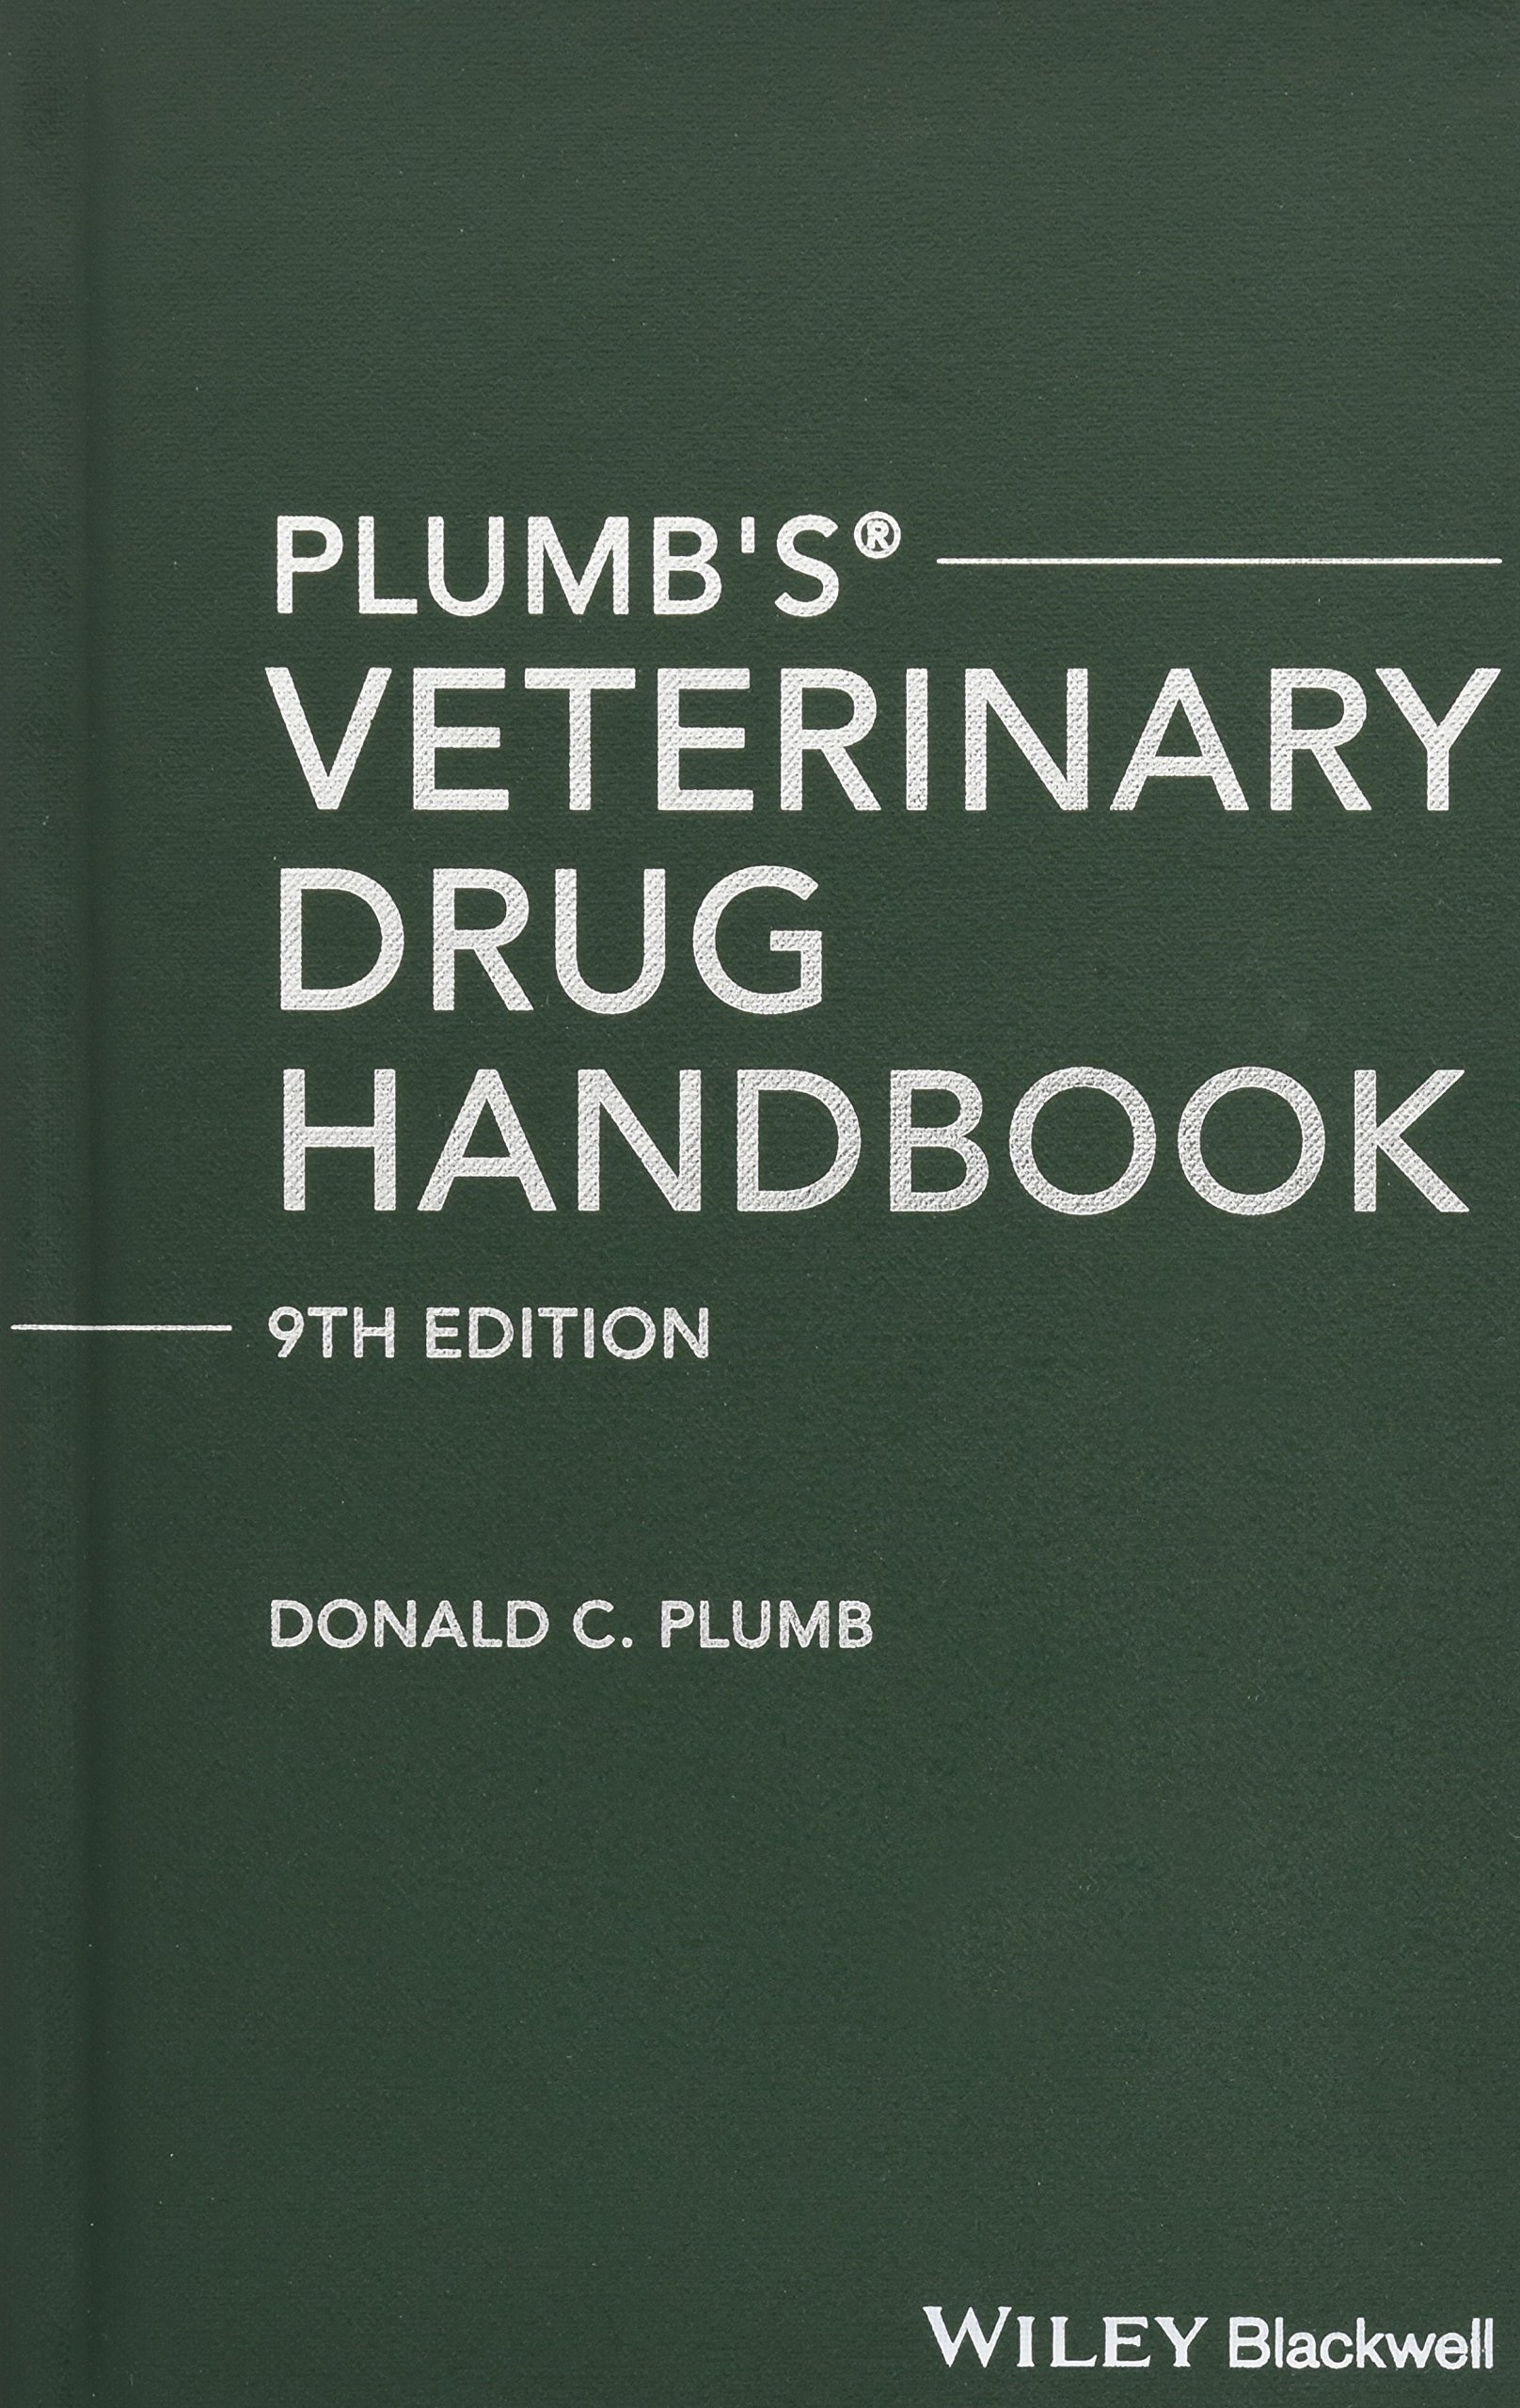 Plumb's Veterinary Drug Handbook: Pocket by Wiley-Blackwell